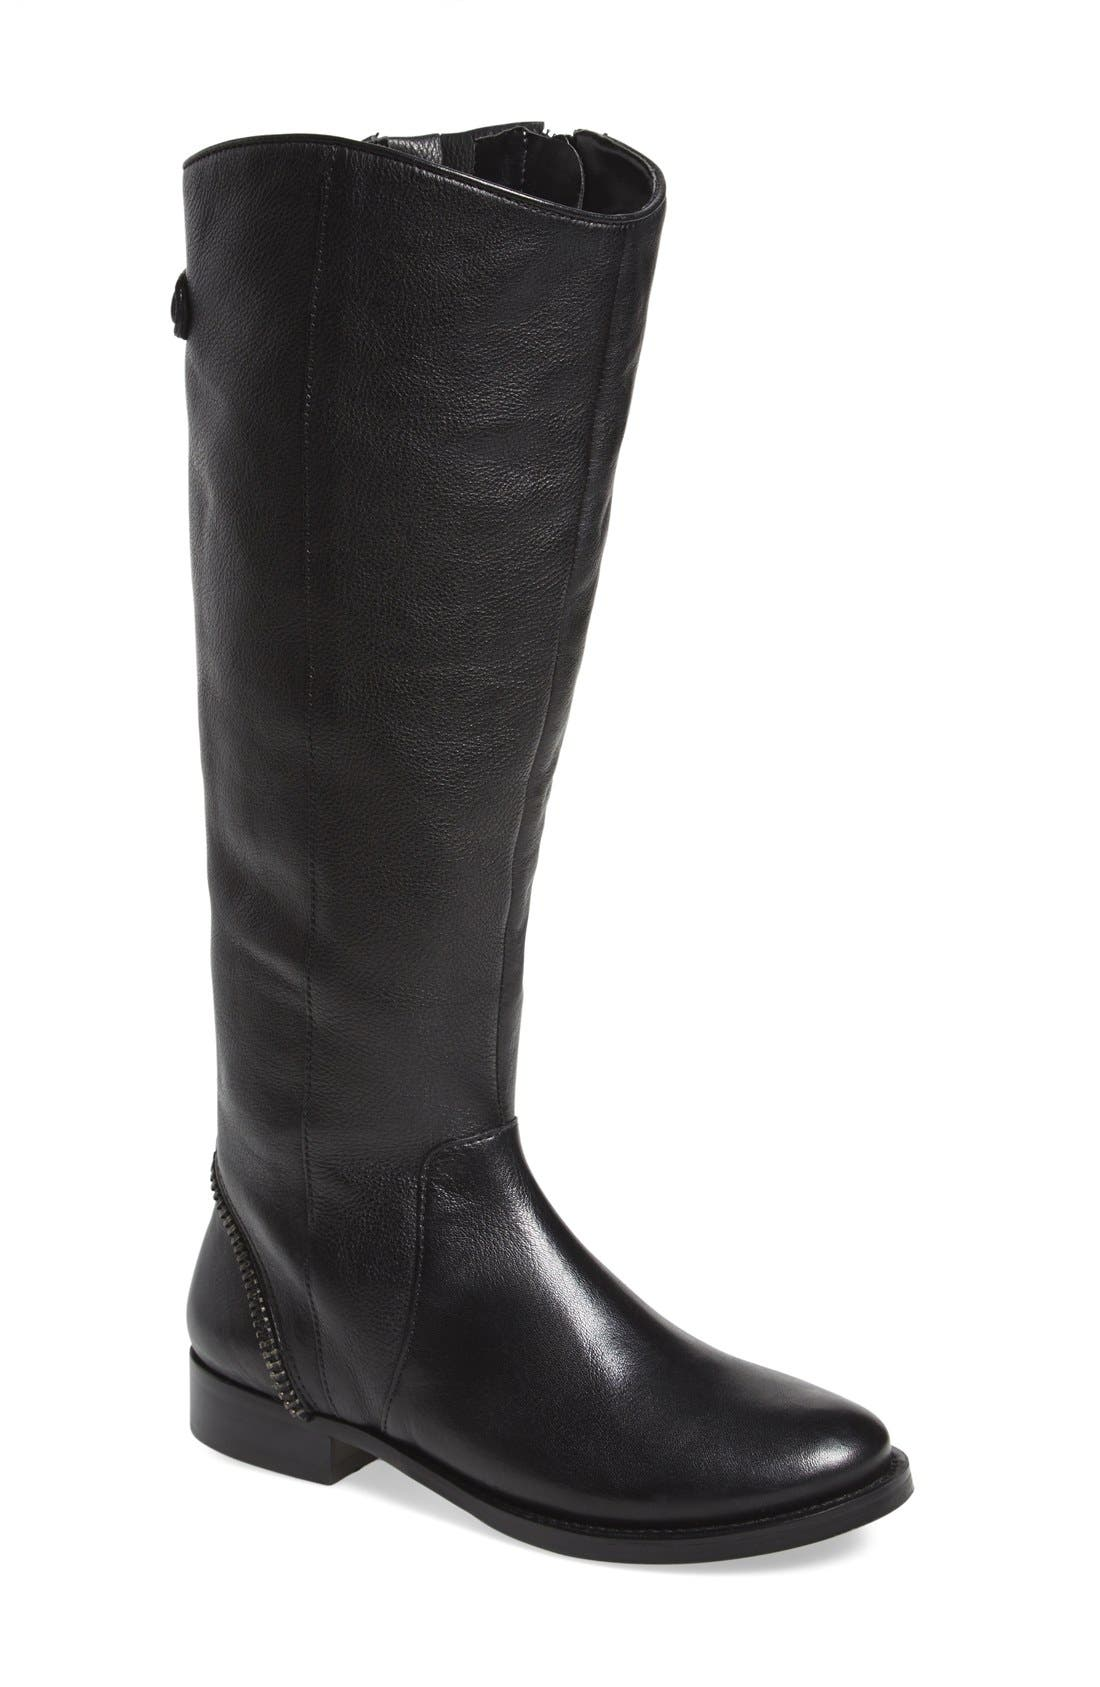 Main Image - Arturo Chiang 'Falicity' Tall Boot (Women)